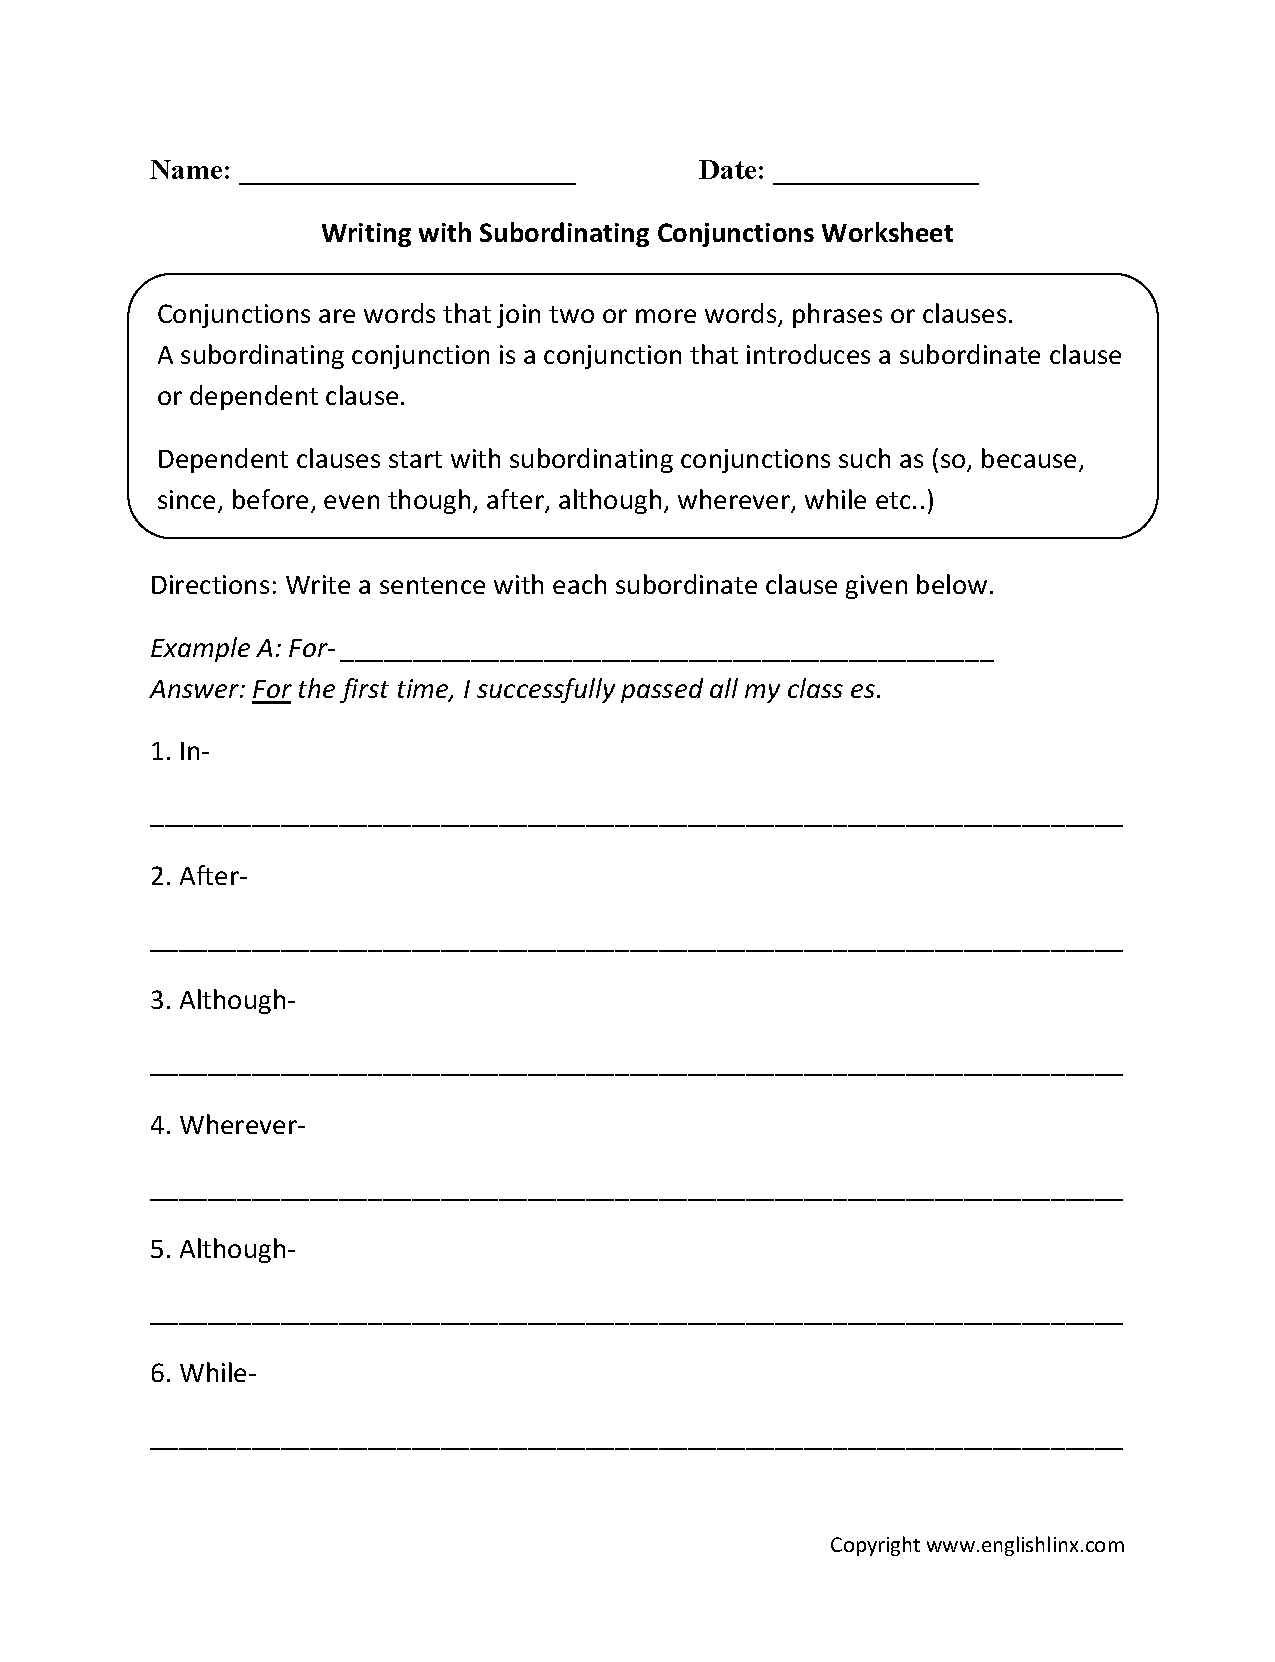 Worksheets Conjunctions Worksheet Tokyoobserver Just